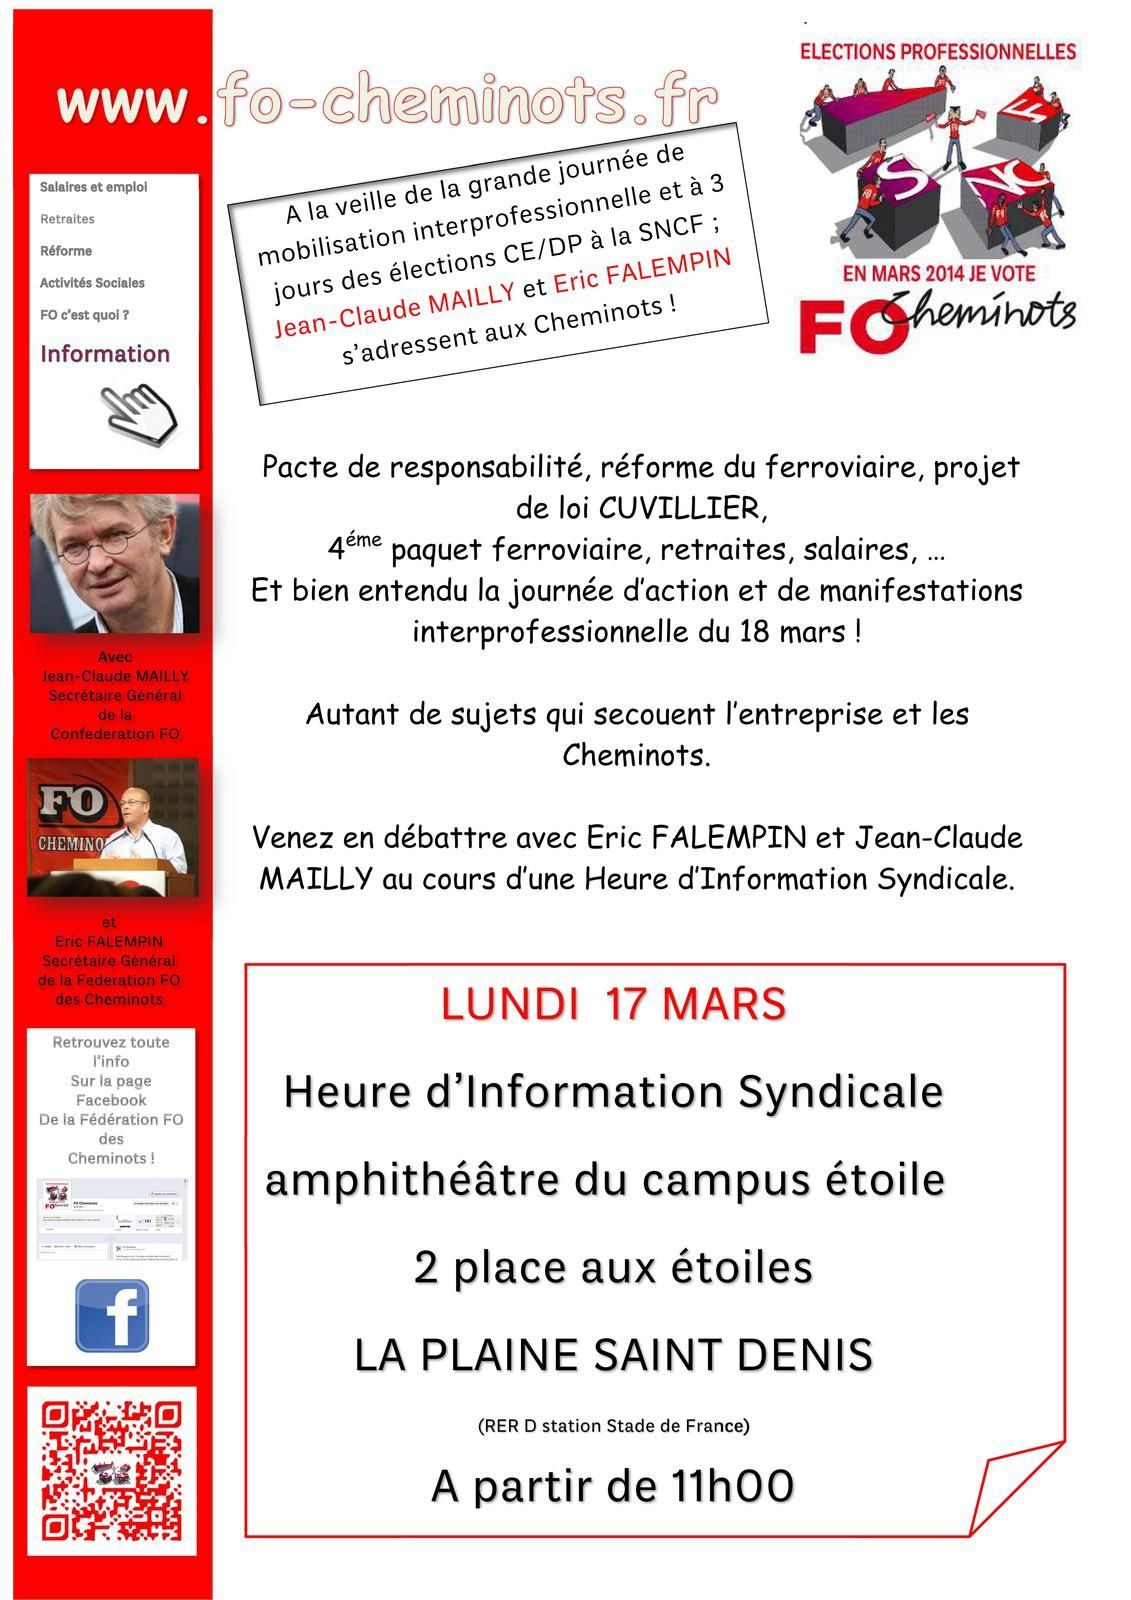 Heure d'Information Syndicale_13 03 2014